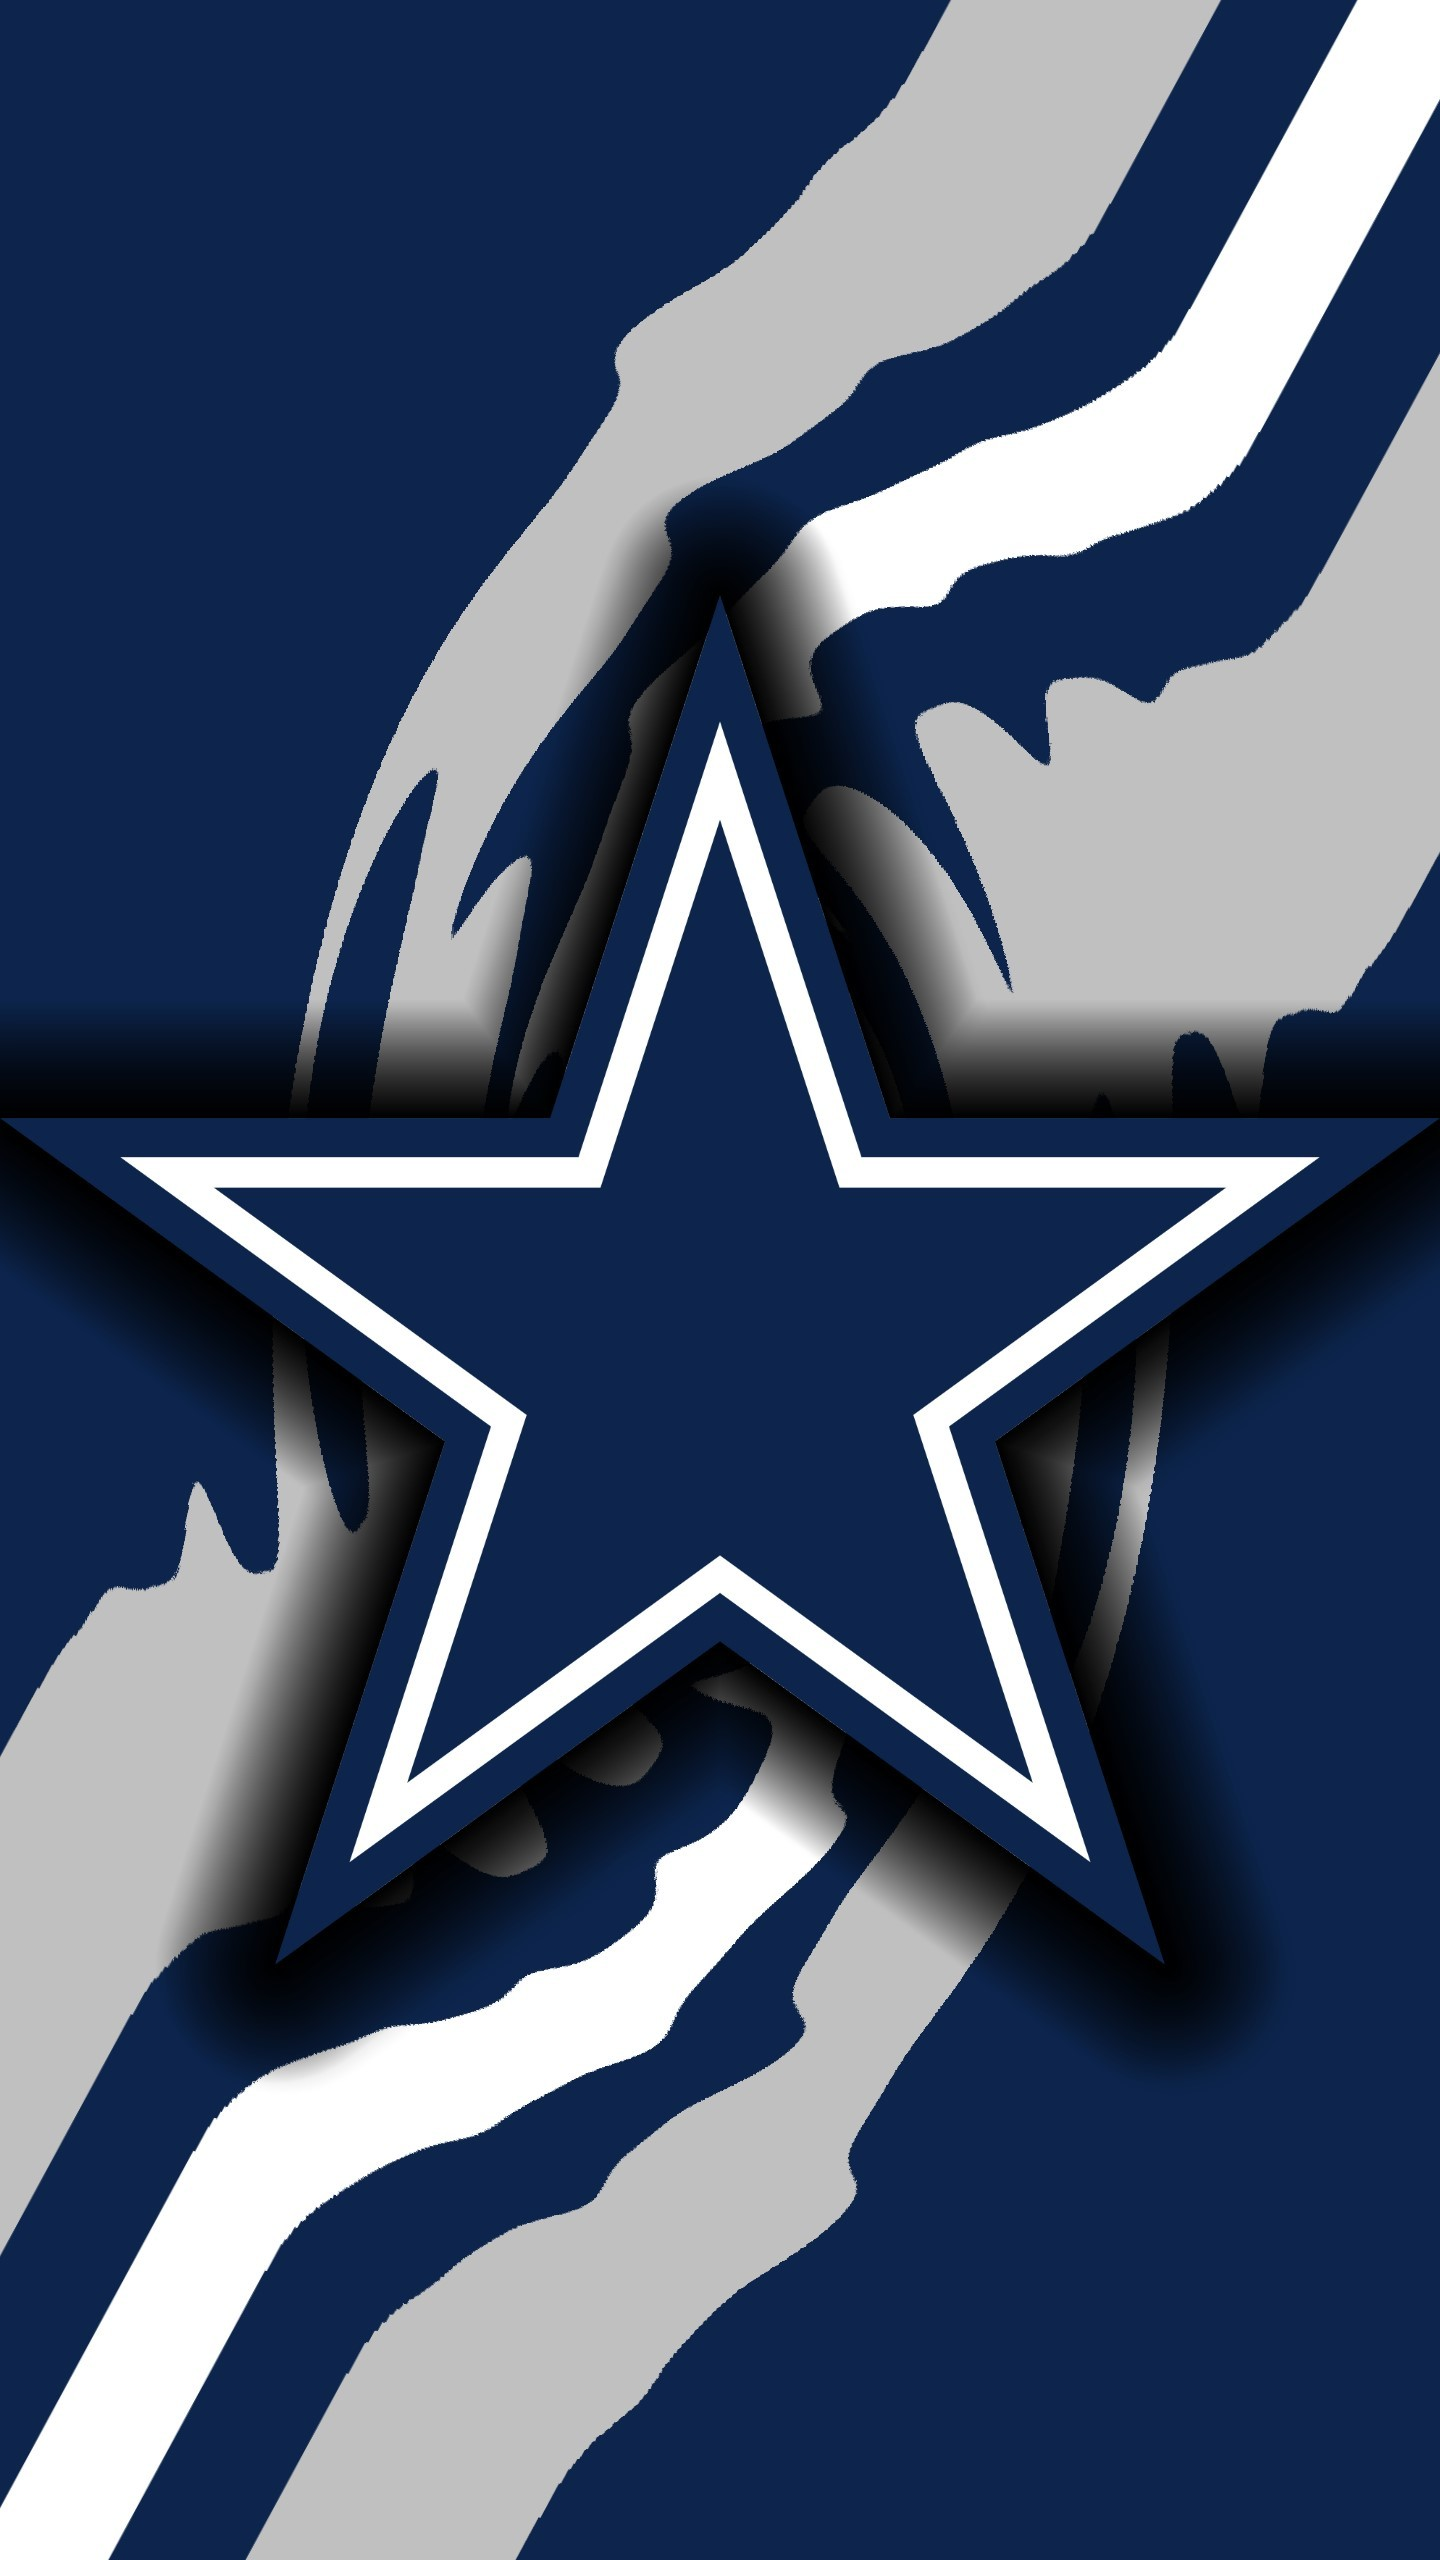 Dallas cowboys star logo wallpaper 66 images 1440x2560 dallas cowboys computer wallpaper art wallpapers pinterest field wallpaper cowboy images voltagebd Images